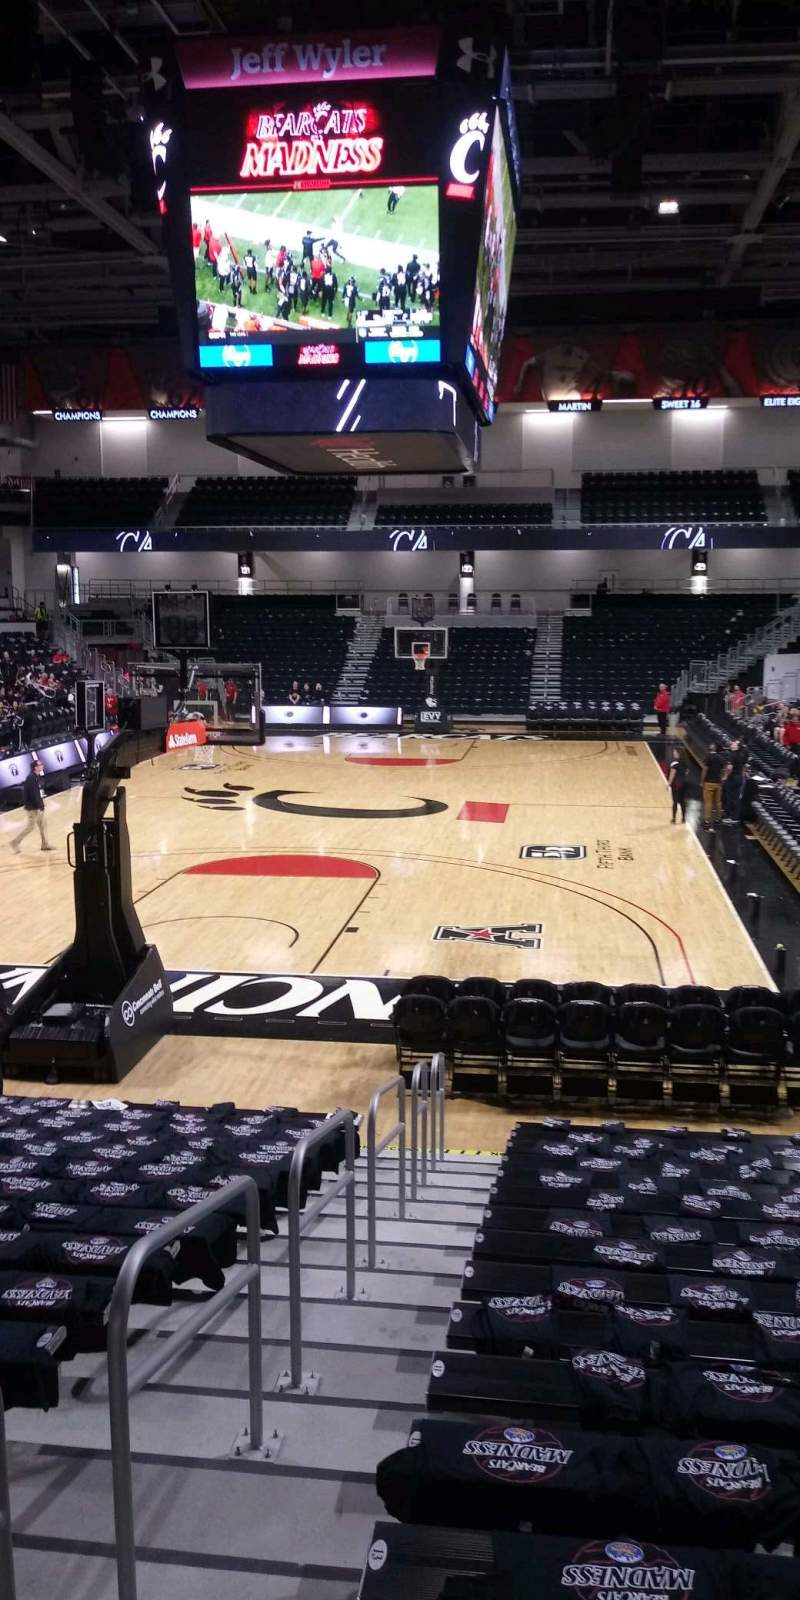 Seating view for Fifth Third Arena Section 109 Row 15 Seat 18